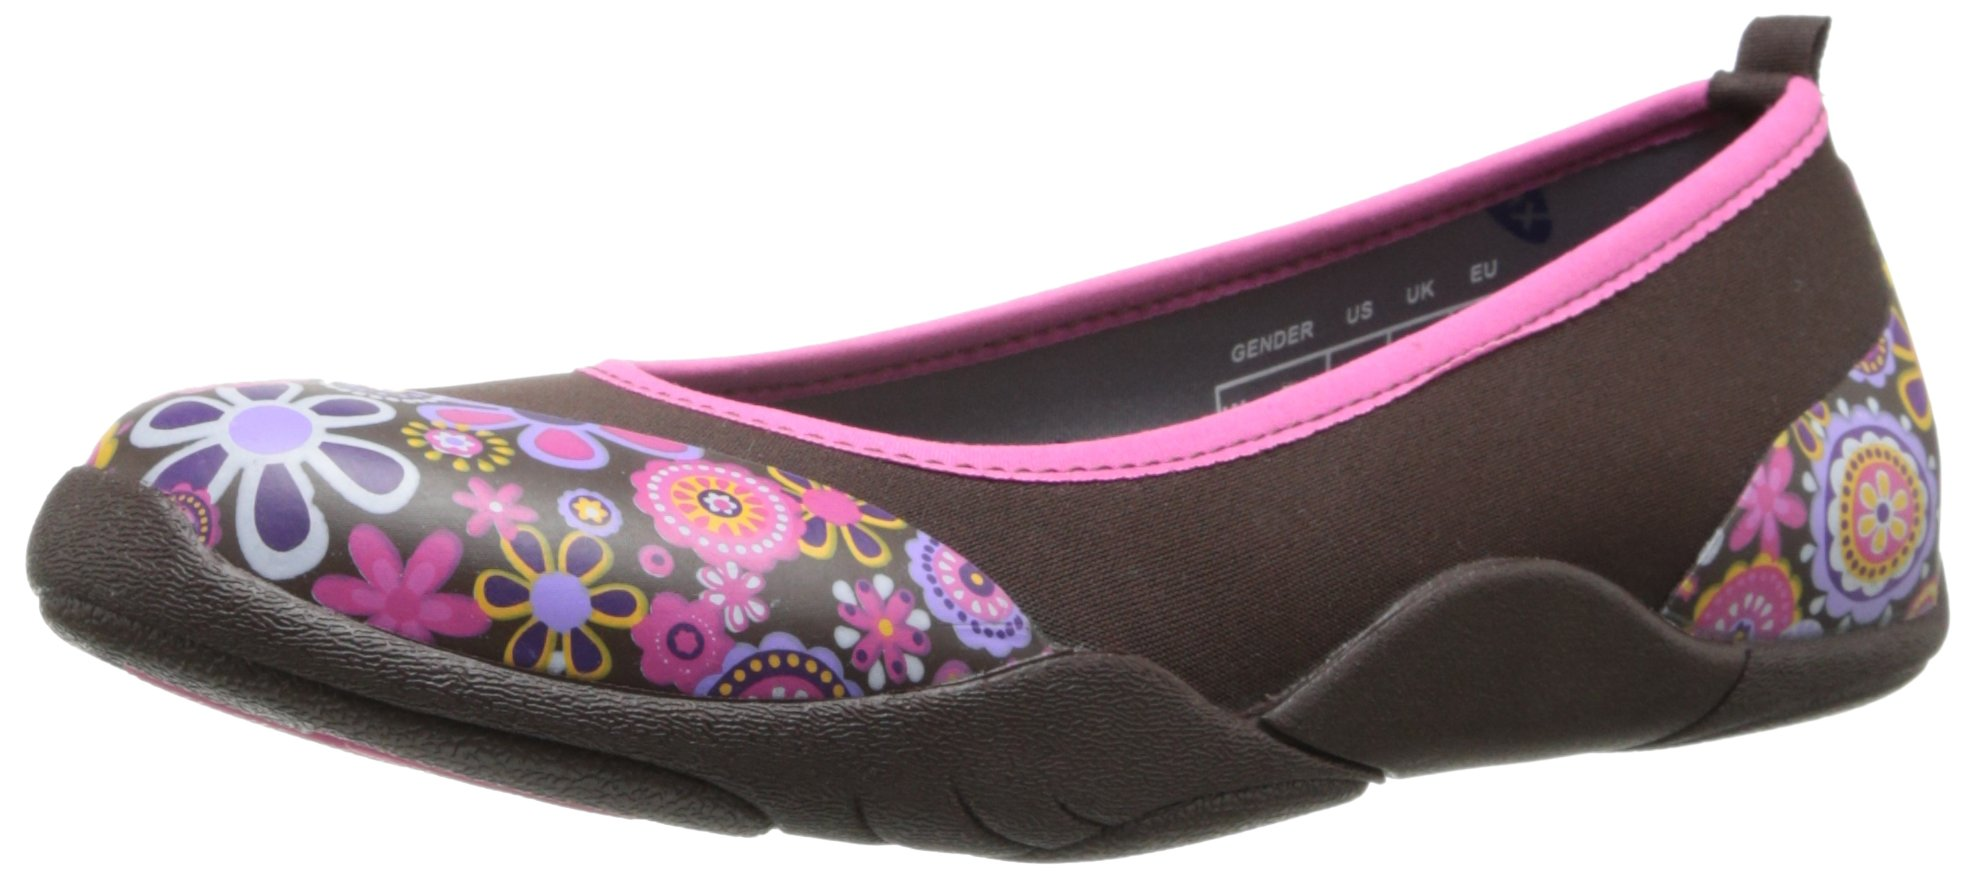 MuckBoots Women's Breezy Slip-On,Brown/Floral,8 M US